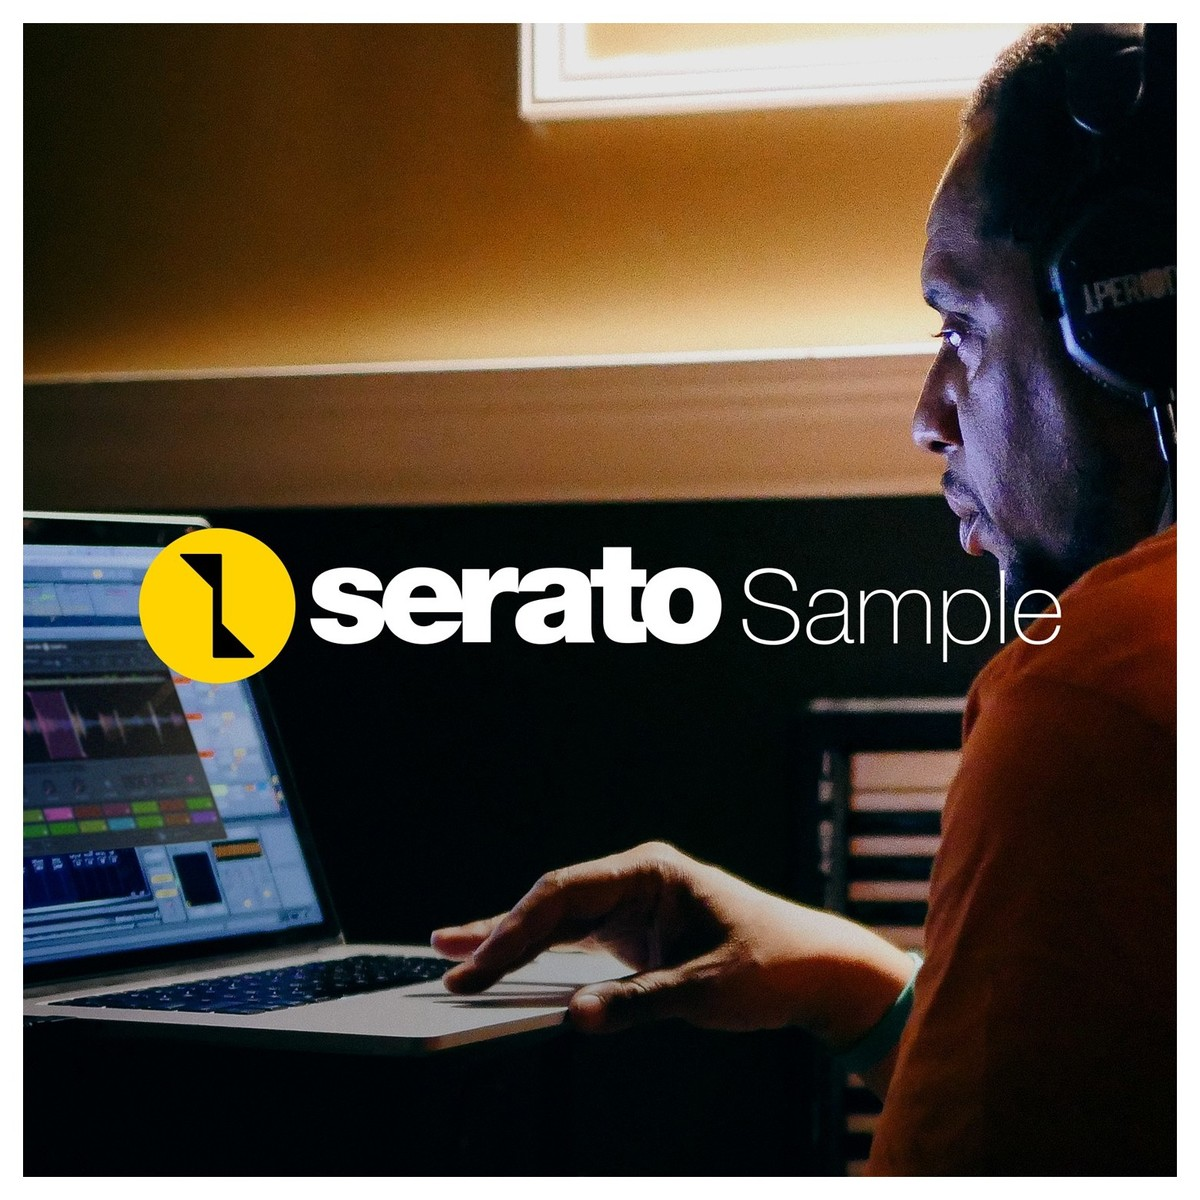 Serato Sample, Download Card